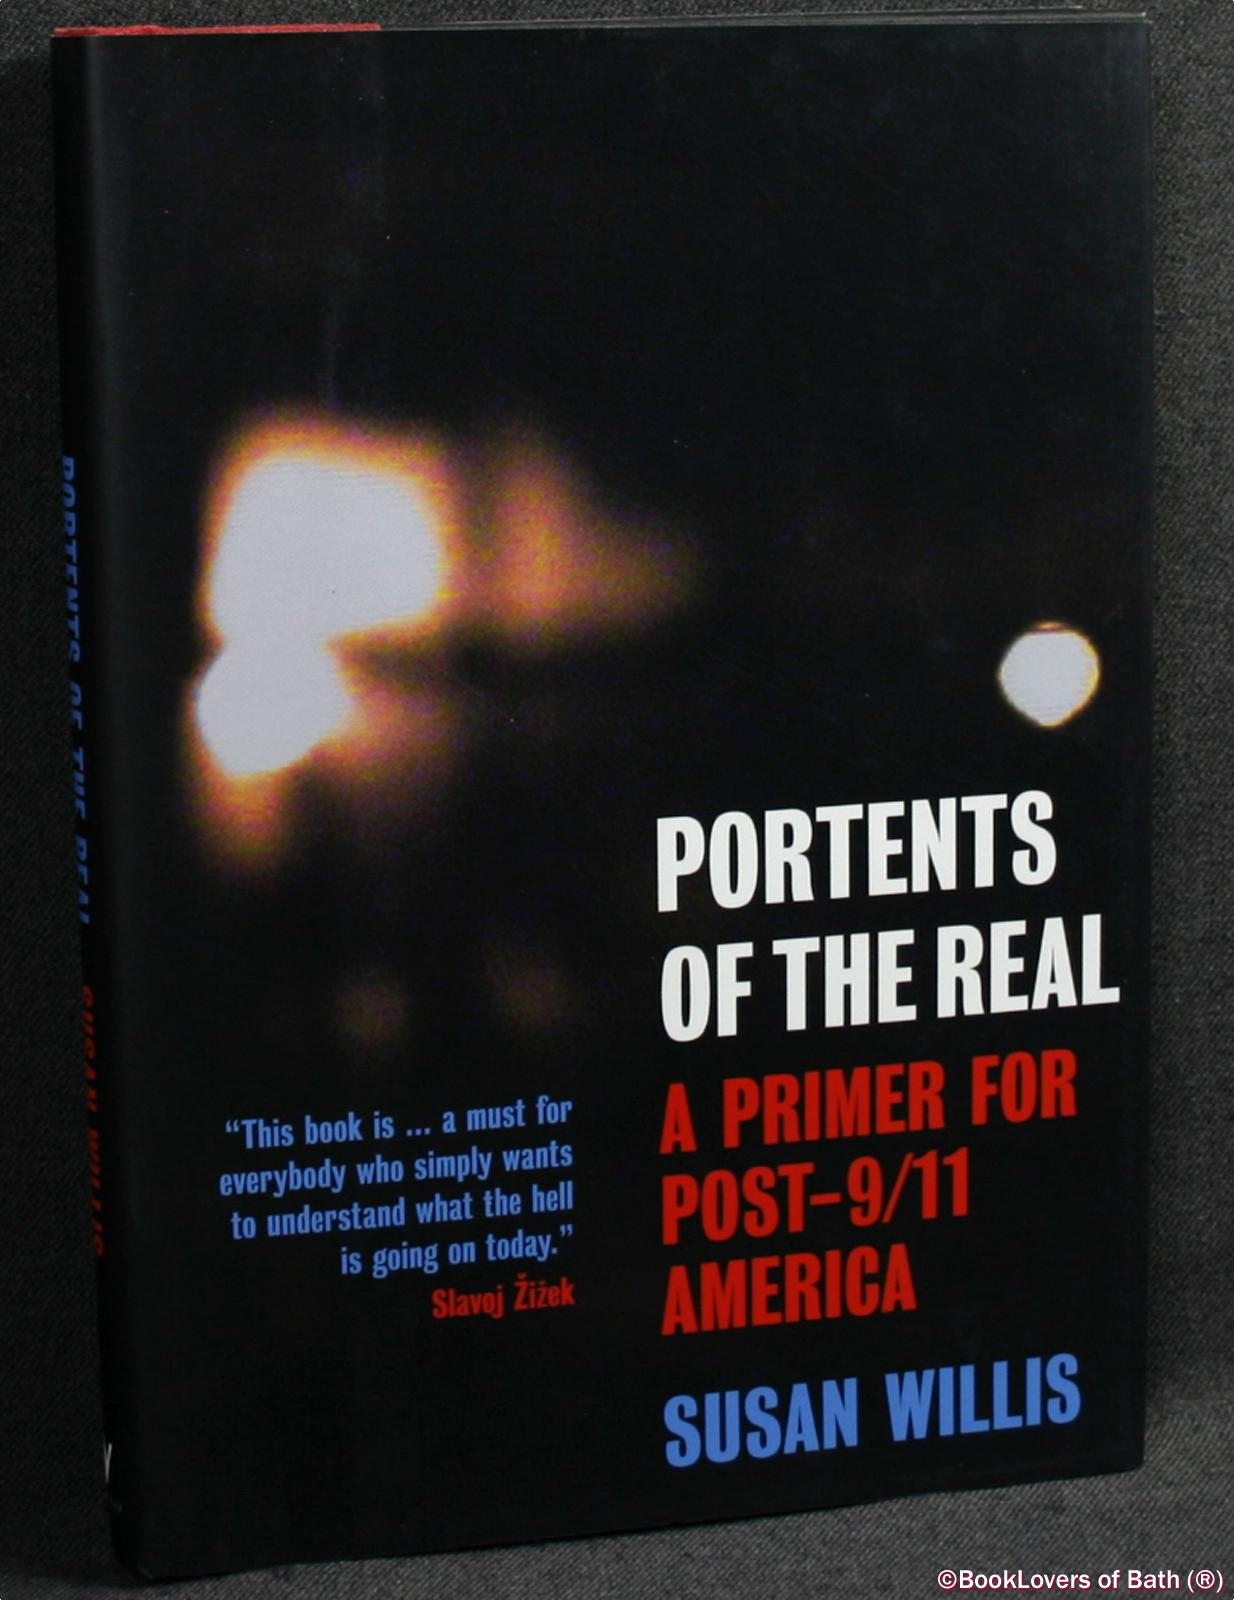 Portents of the Real: A Primer For Post-9/11 America - Susan Willis